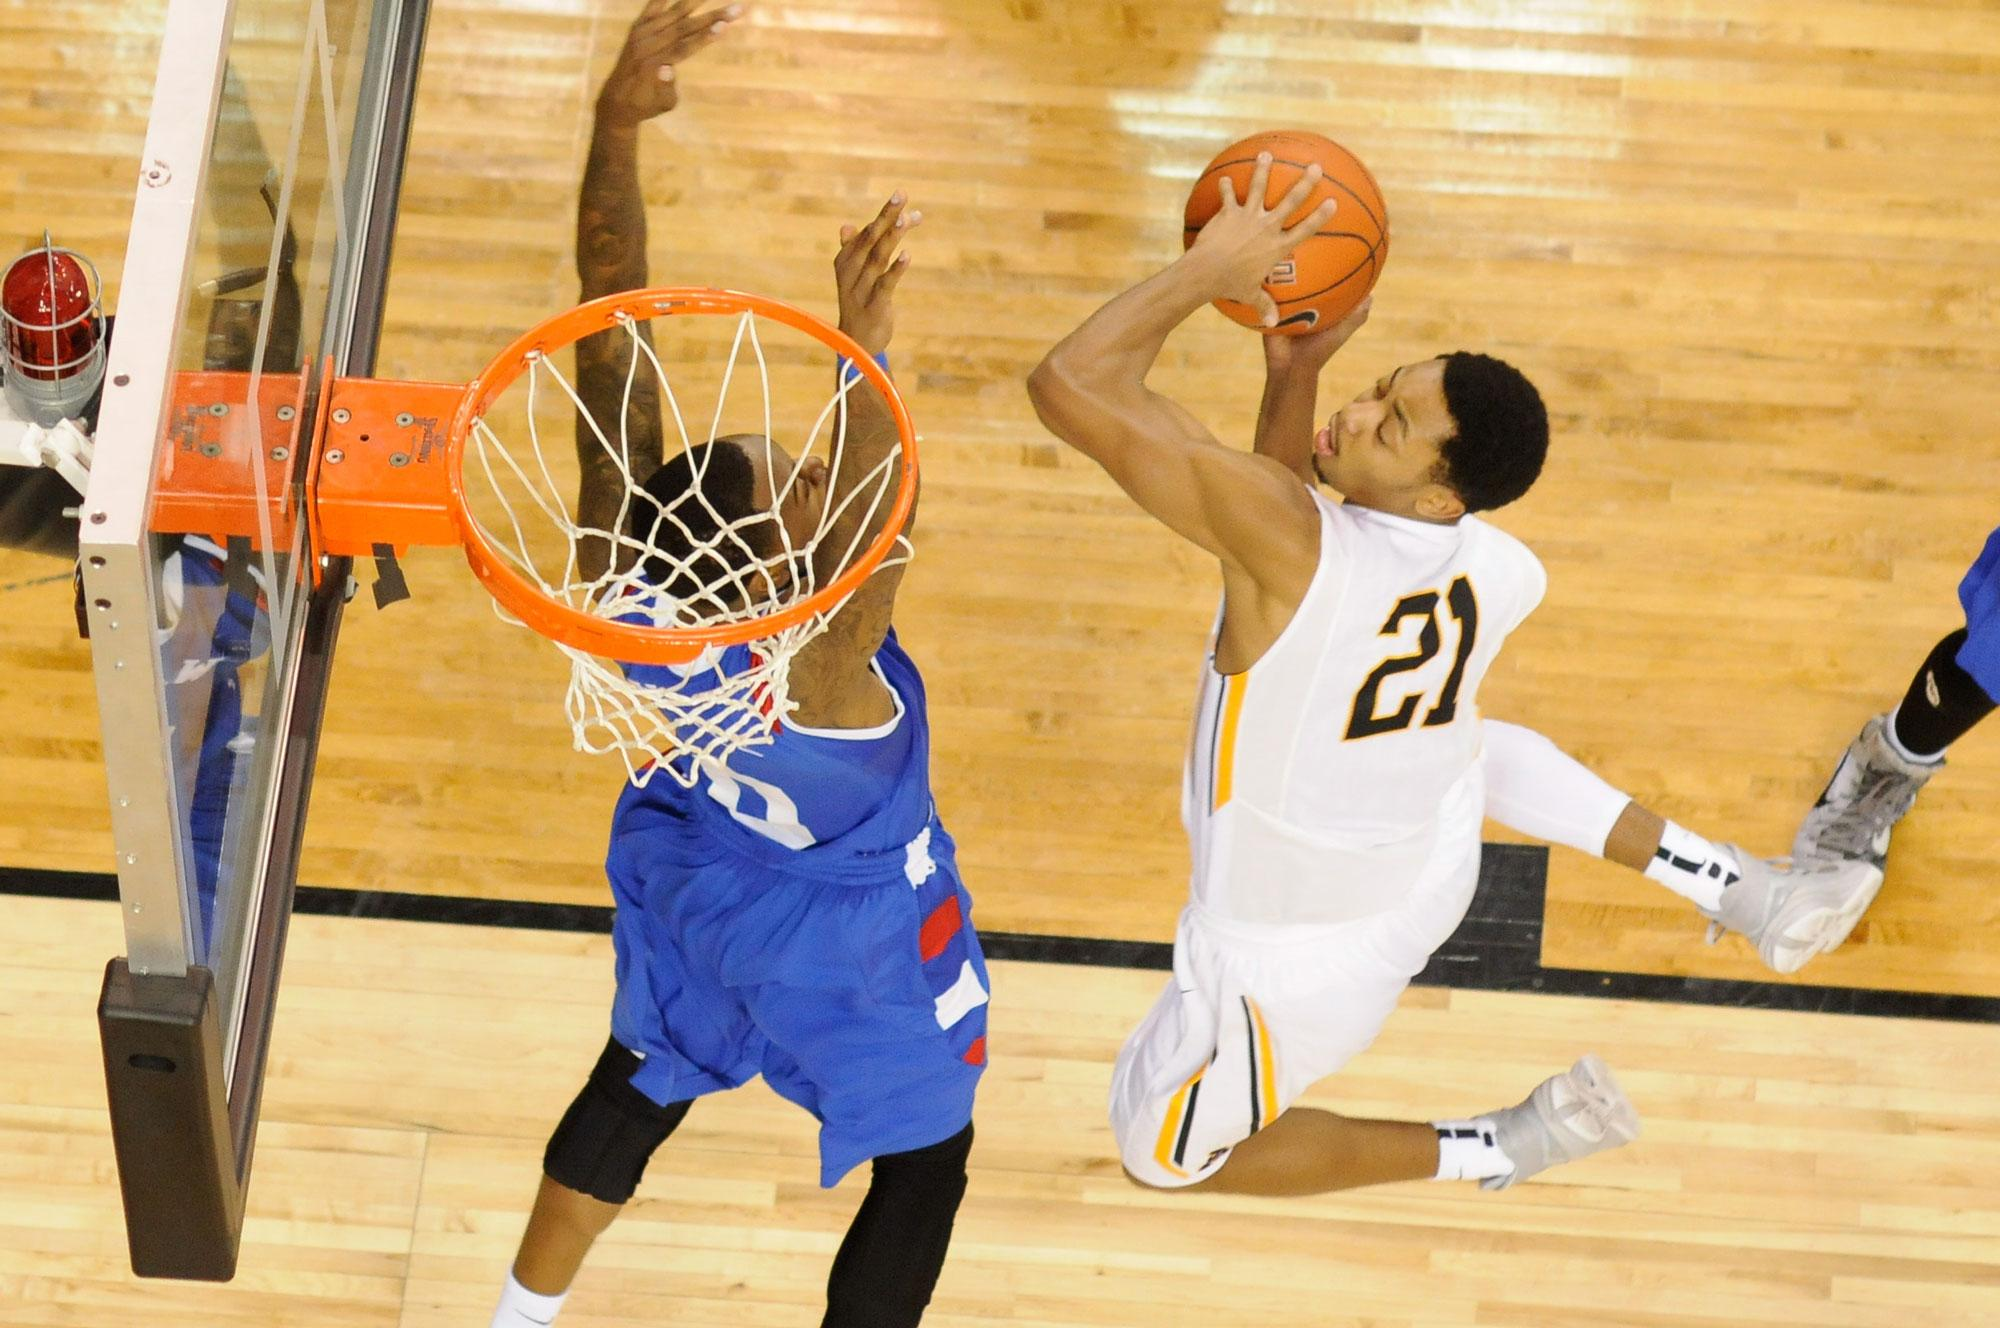 Junior guard Frank Eaves rises up to lead Mountaineers